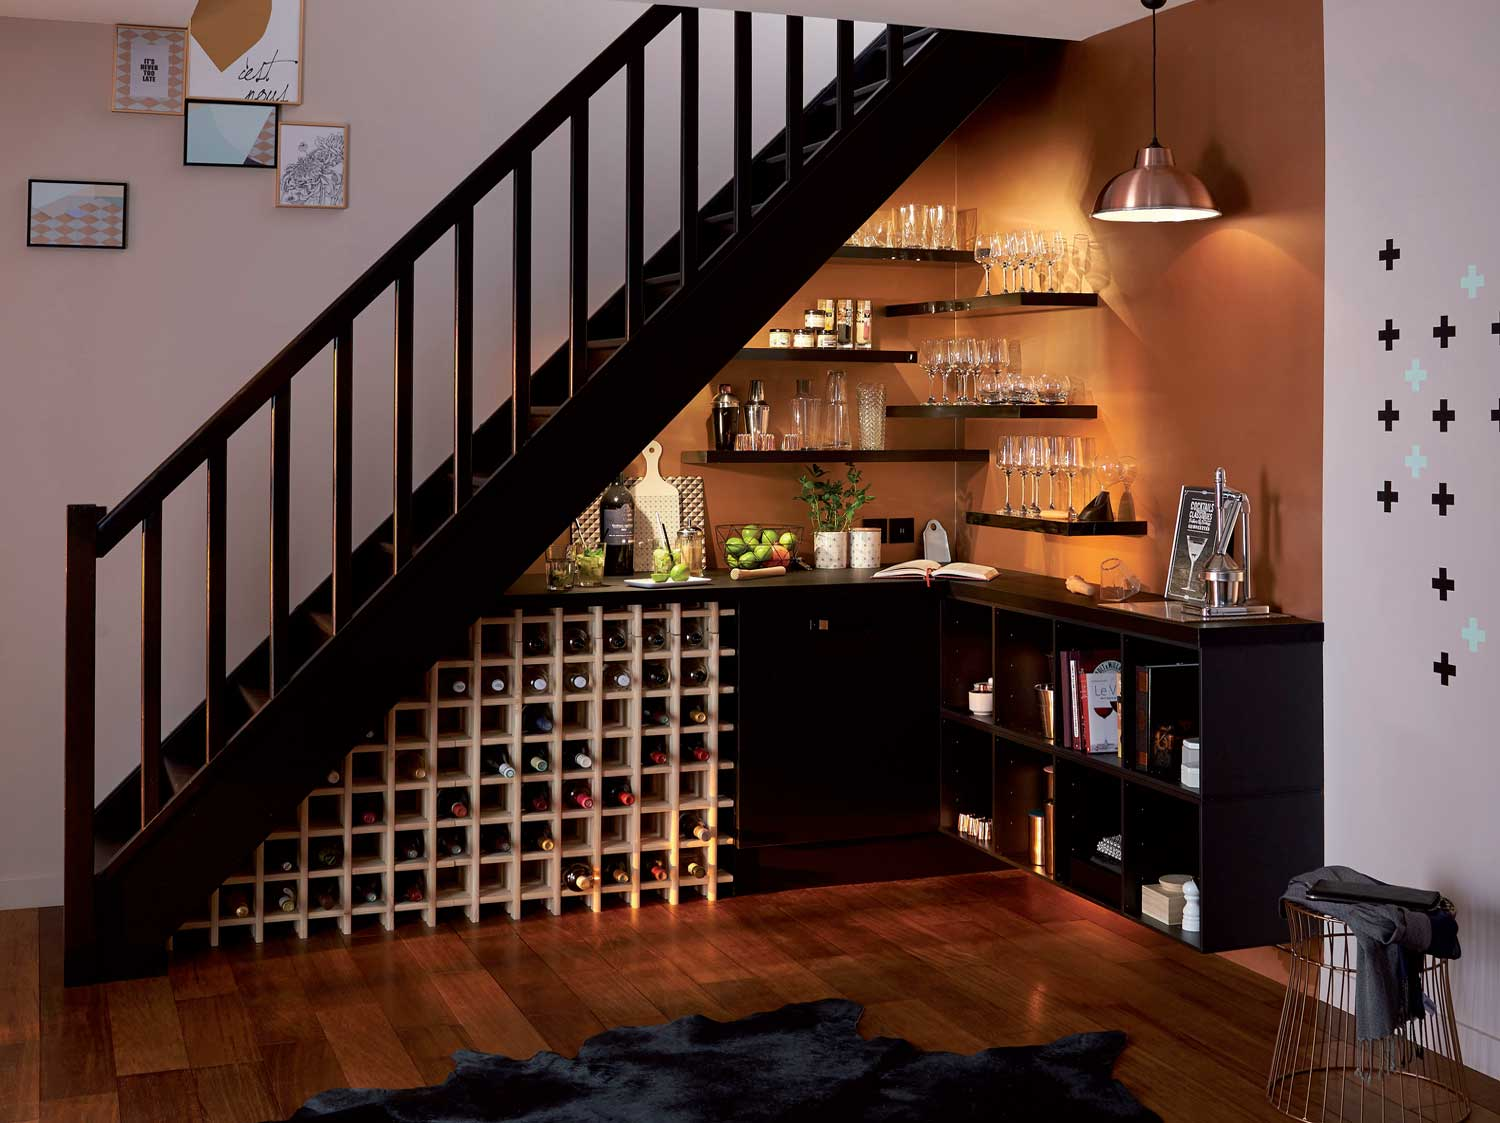 comment r aliser un bar cocktail sous votre escalier. Black Bedroom Furniture Sets. Home Design Ideas